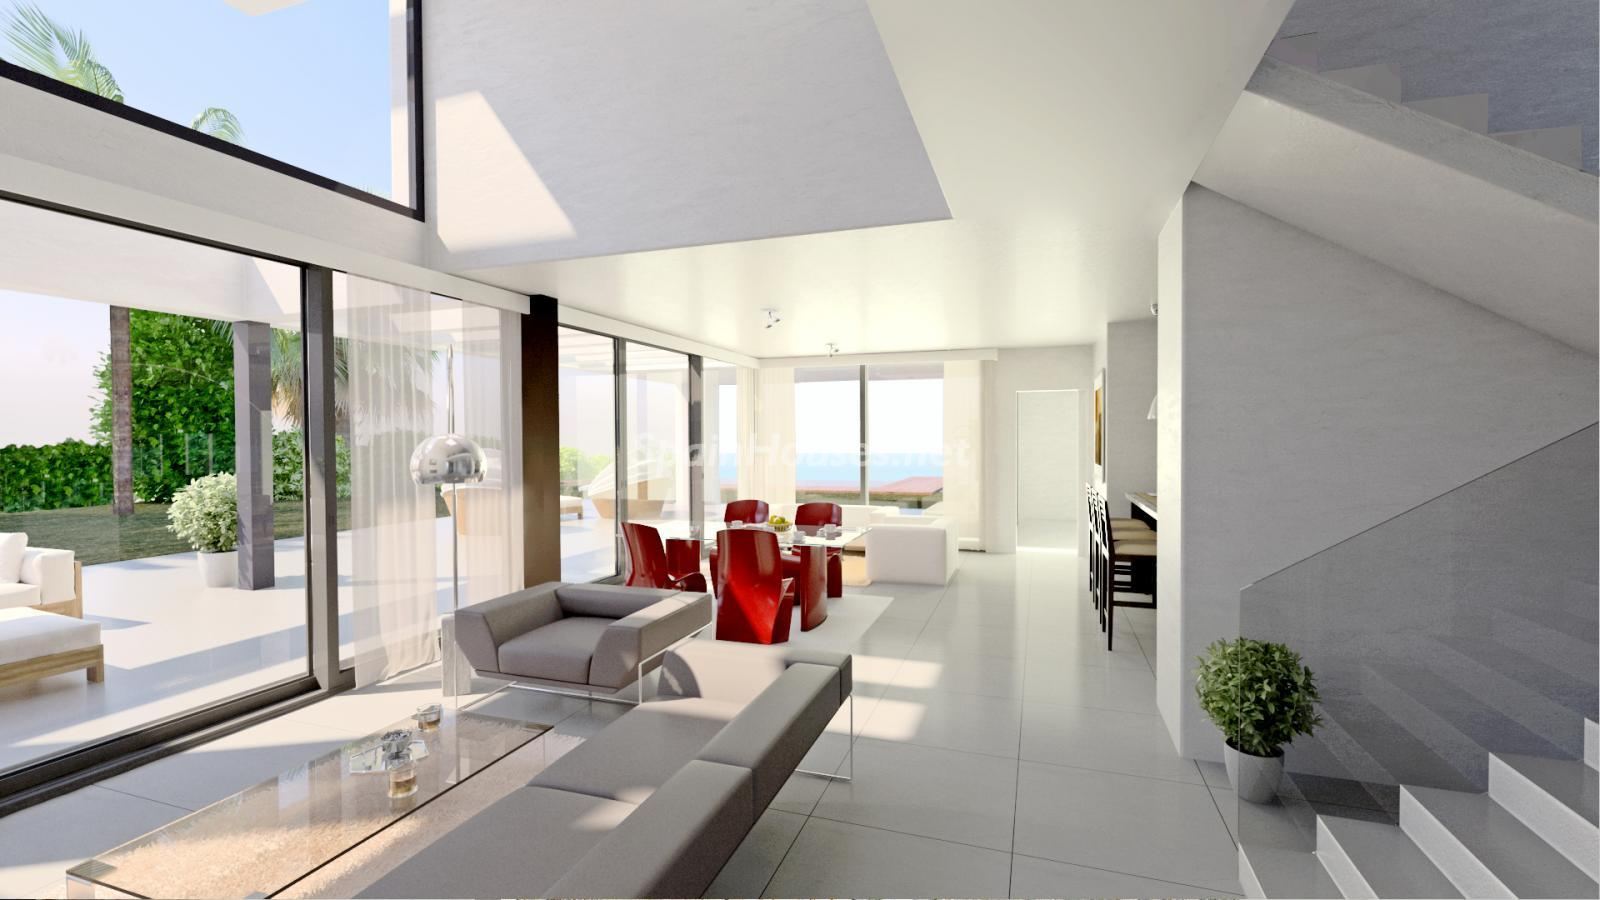 5. Buena Vista Hills - Buena Vista Hills, 26 Modern Villas with Panoramic Sea Views in Mijas, Costa del Sol